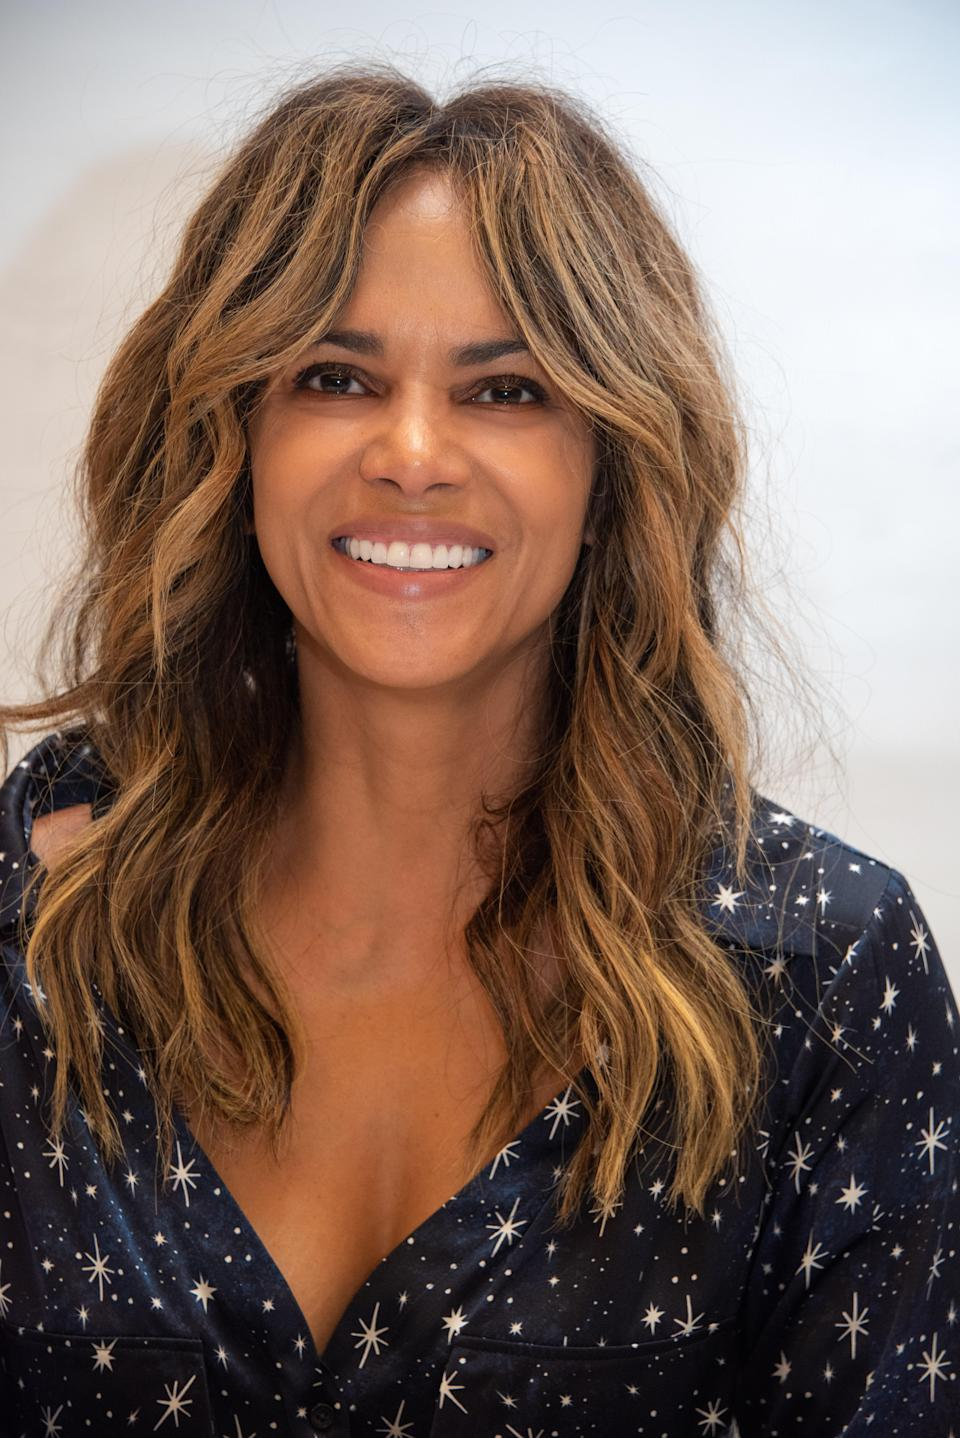 """Keep all your length but add some choppier layers around your face like Halle Berry. Embrace the mermaid feel of this cut by air-drying with plenty of <a href=""""https://www.glamour.com/gallery/best-hair-texture-sprays?mbid=synd_yahoo_rss"""" rel=""""nofollow noopener"""" target=""""_blank"""" data-ylk=""""slk:salt spray"""" class=""""link rapid-noclick-resp"""">salt spray</a>."""